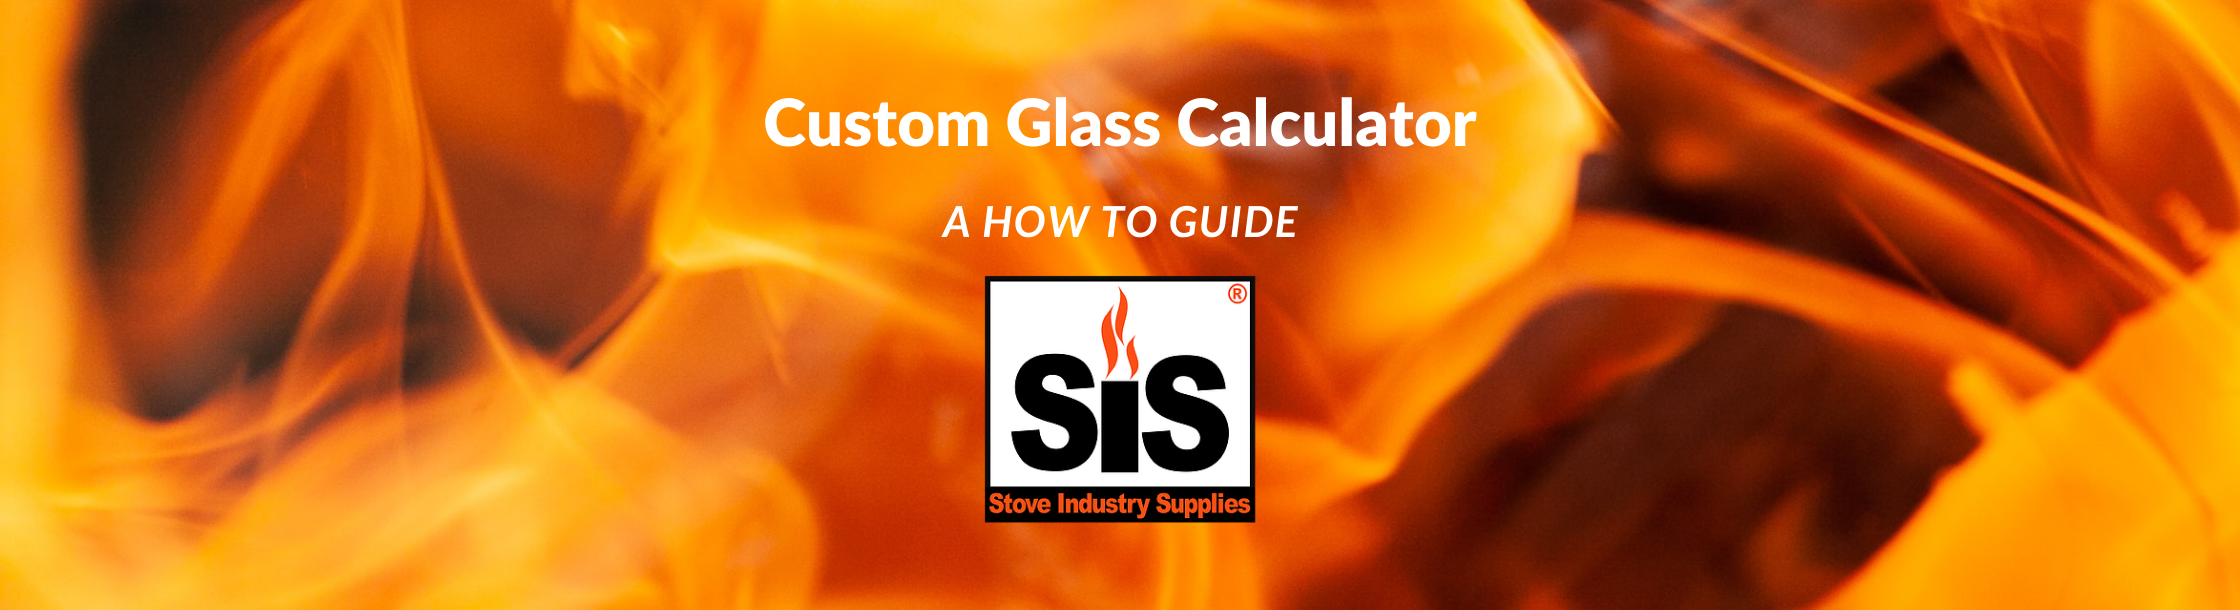 Stove Industry Supplies Custom Glass Calculator - A How to Guide